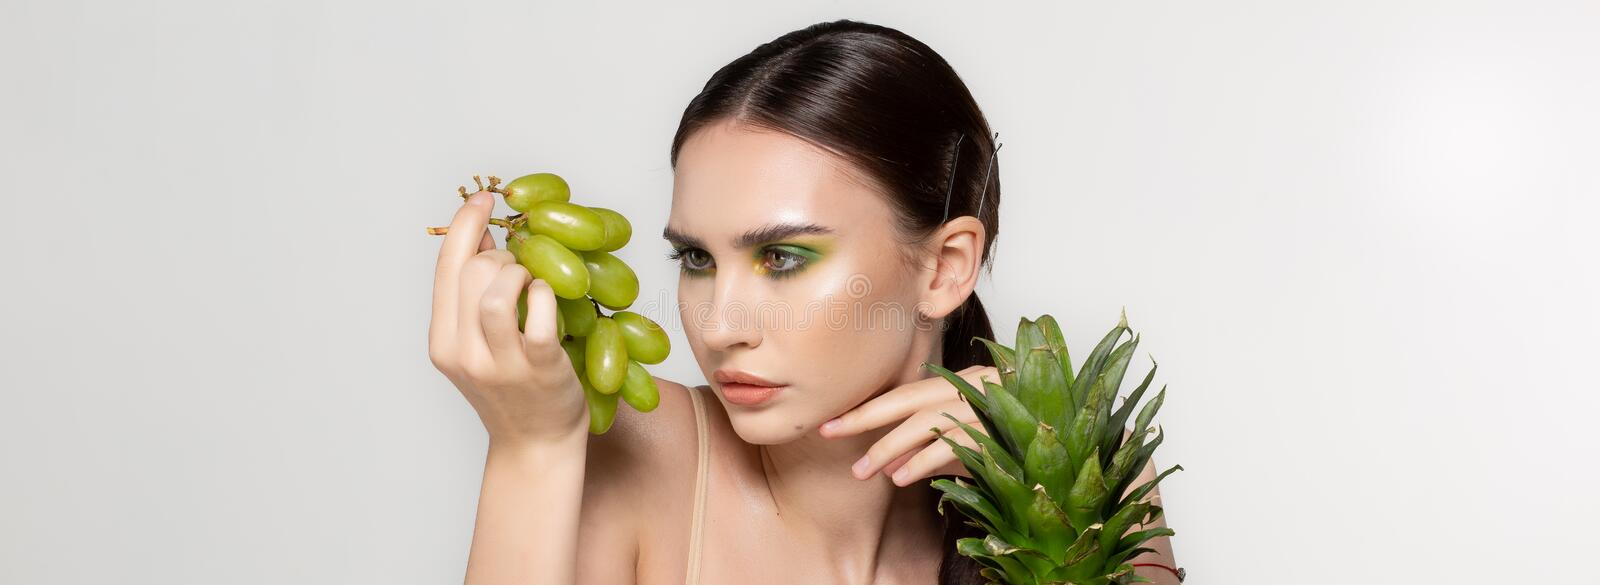 Healthy young brunette woman looking at green grapes in her hand, fruits and vegetables on the table, studio photo on stock photo